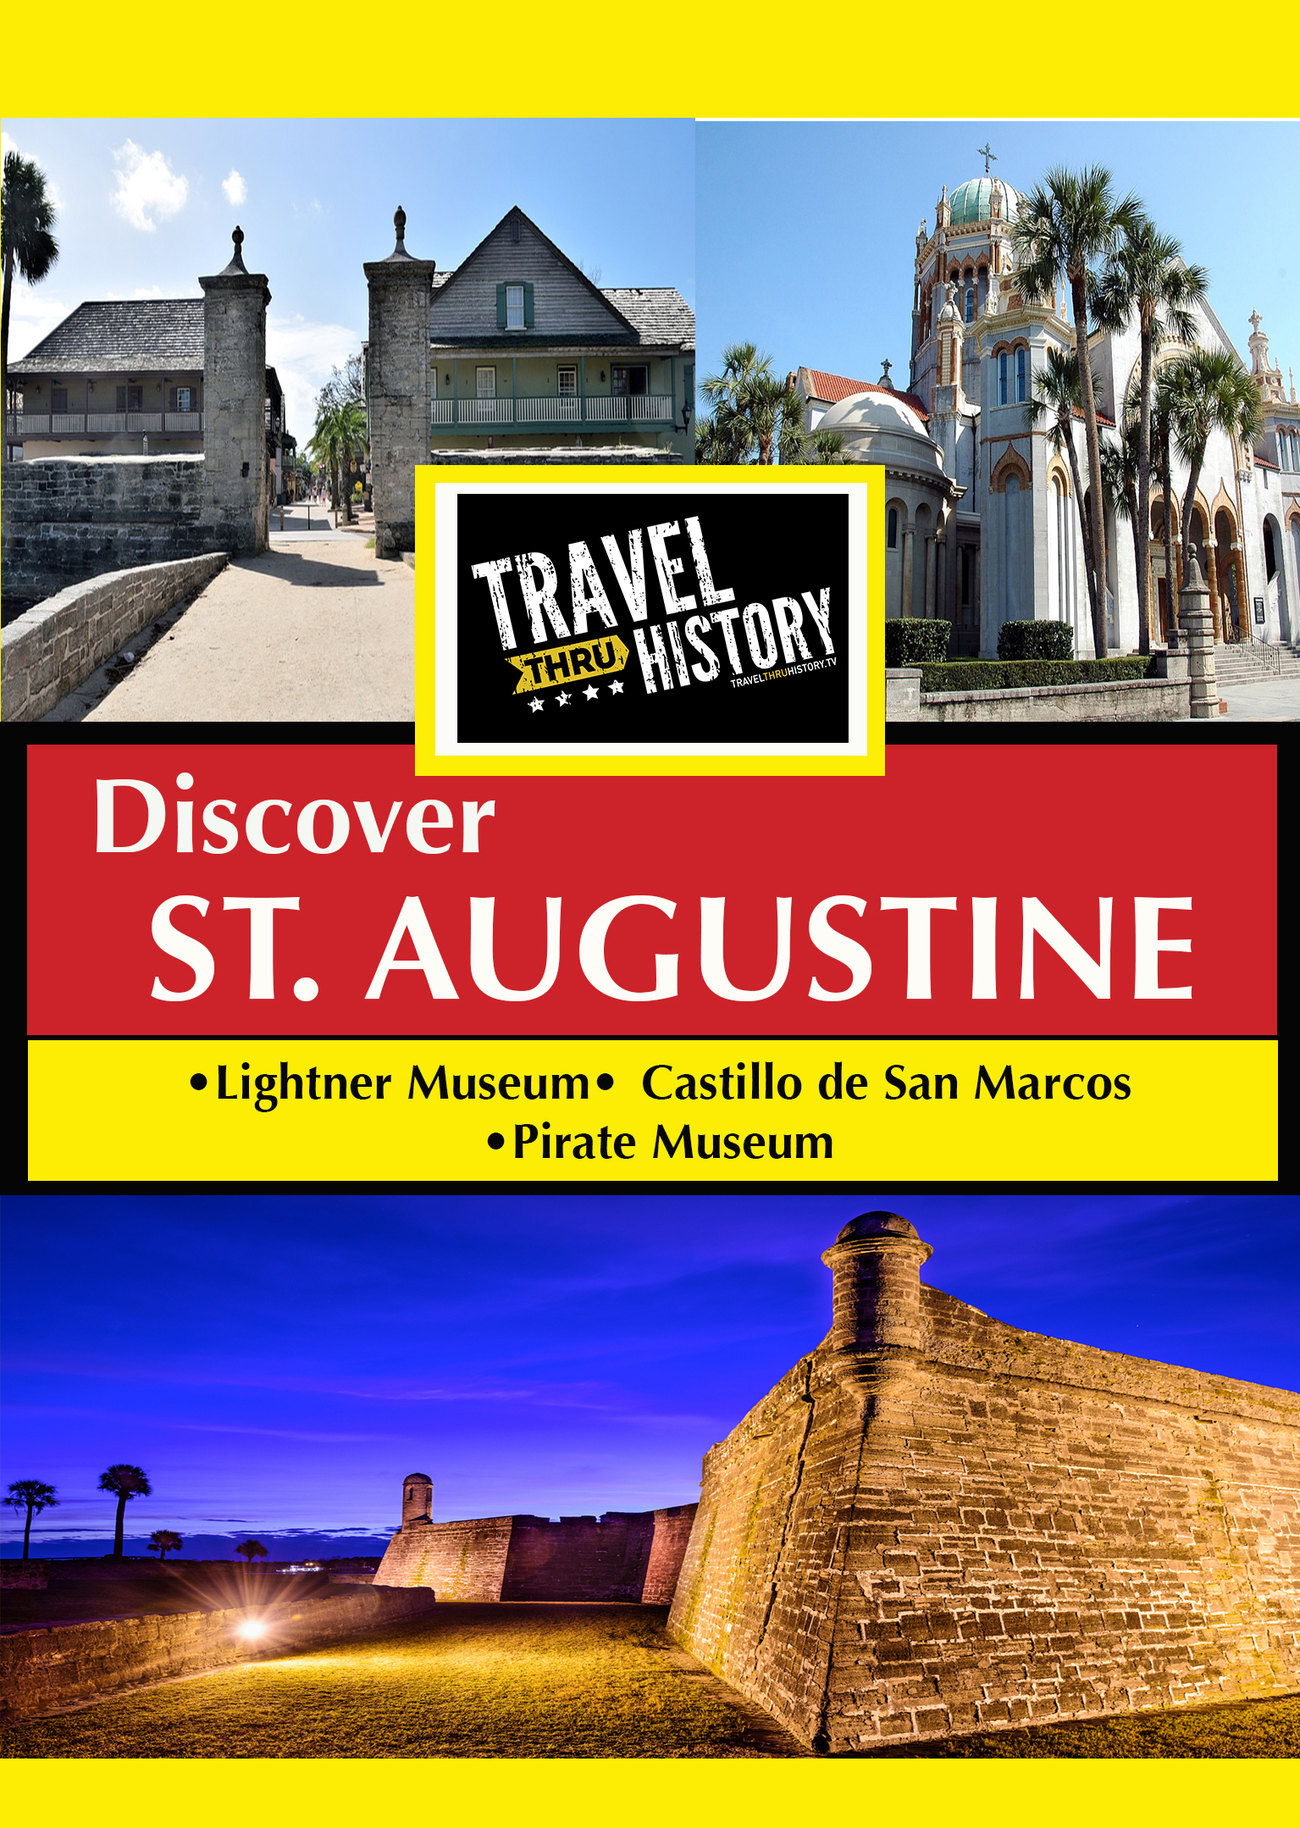 T8954 - Discover St. Augustine